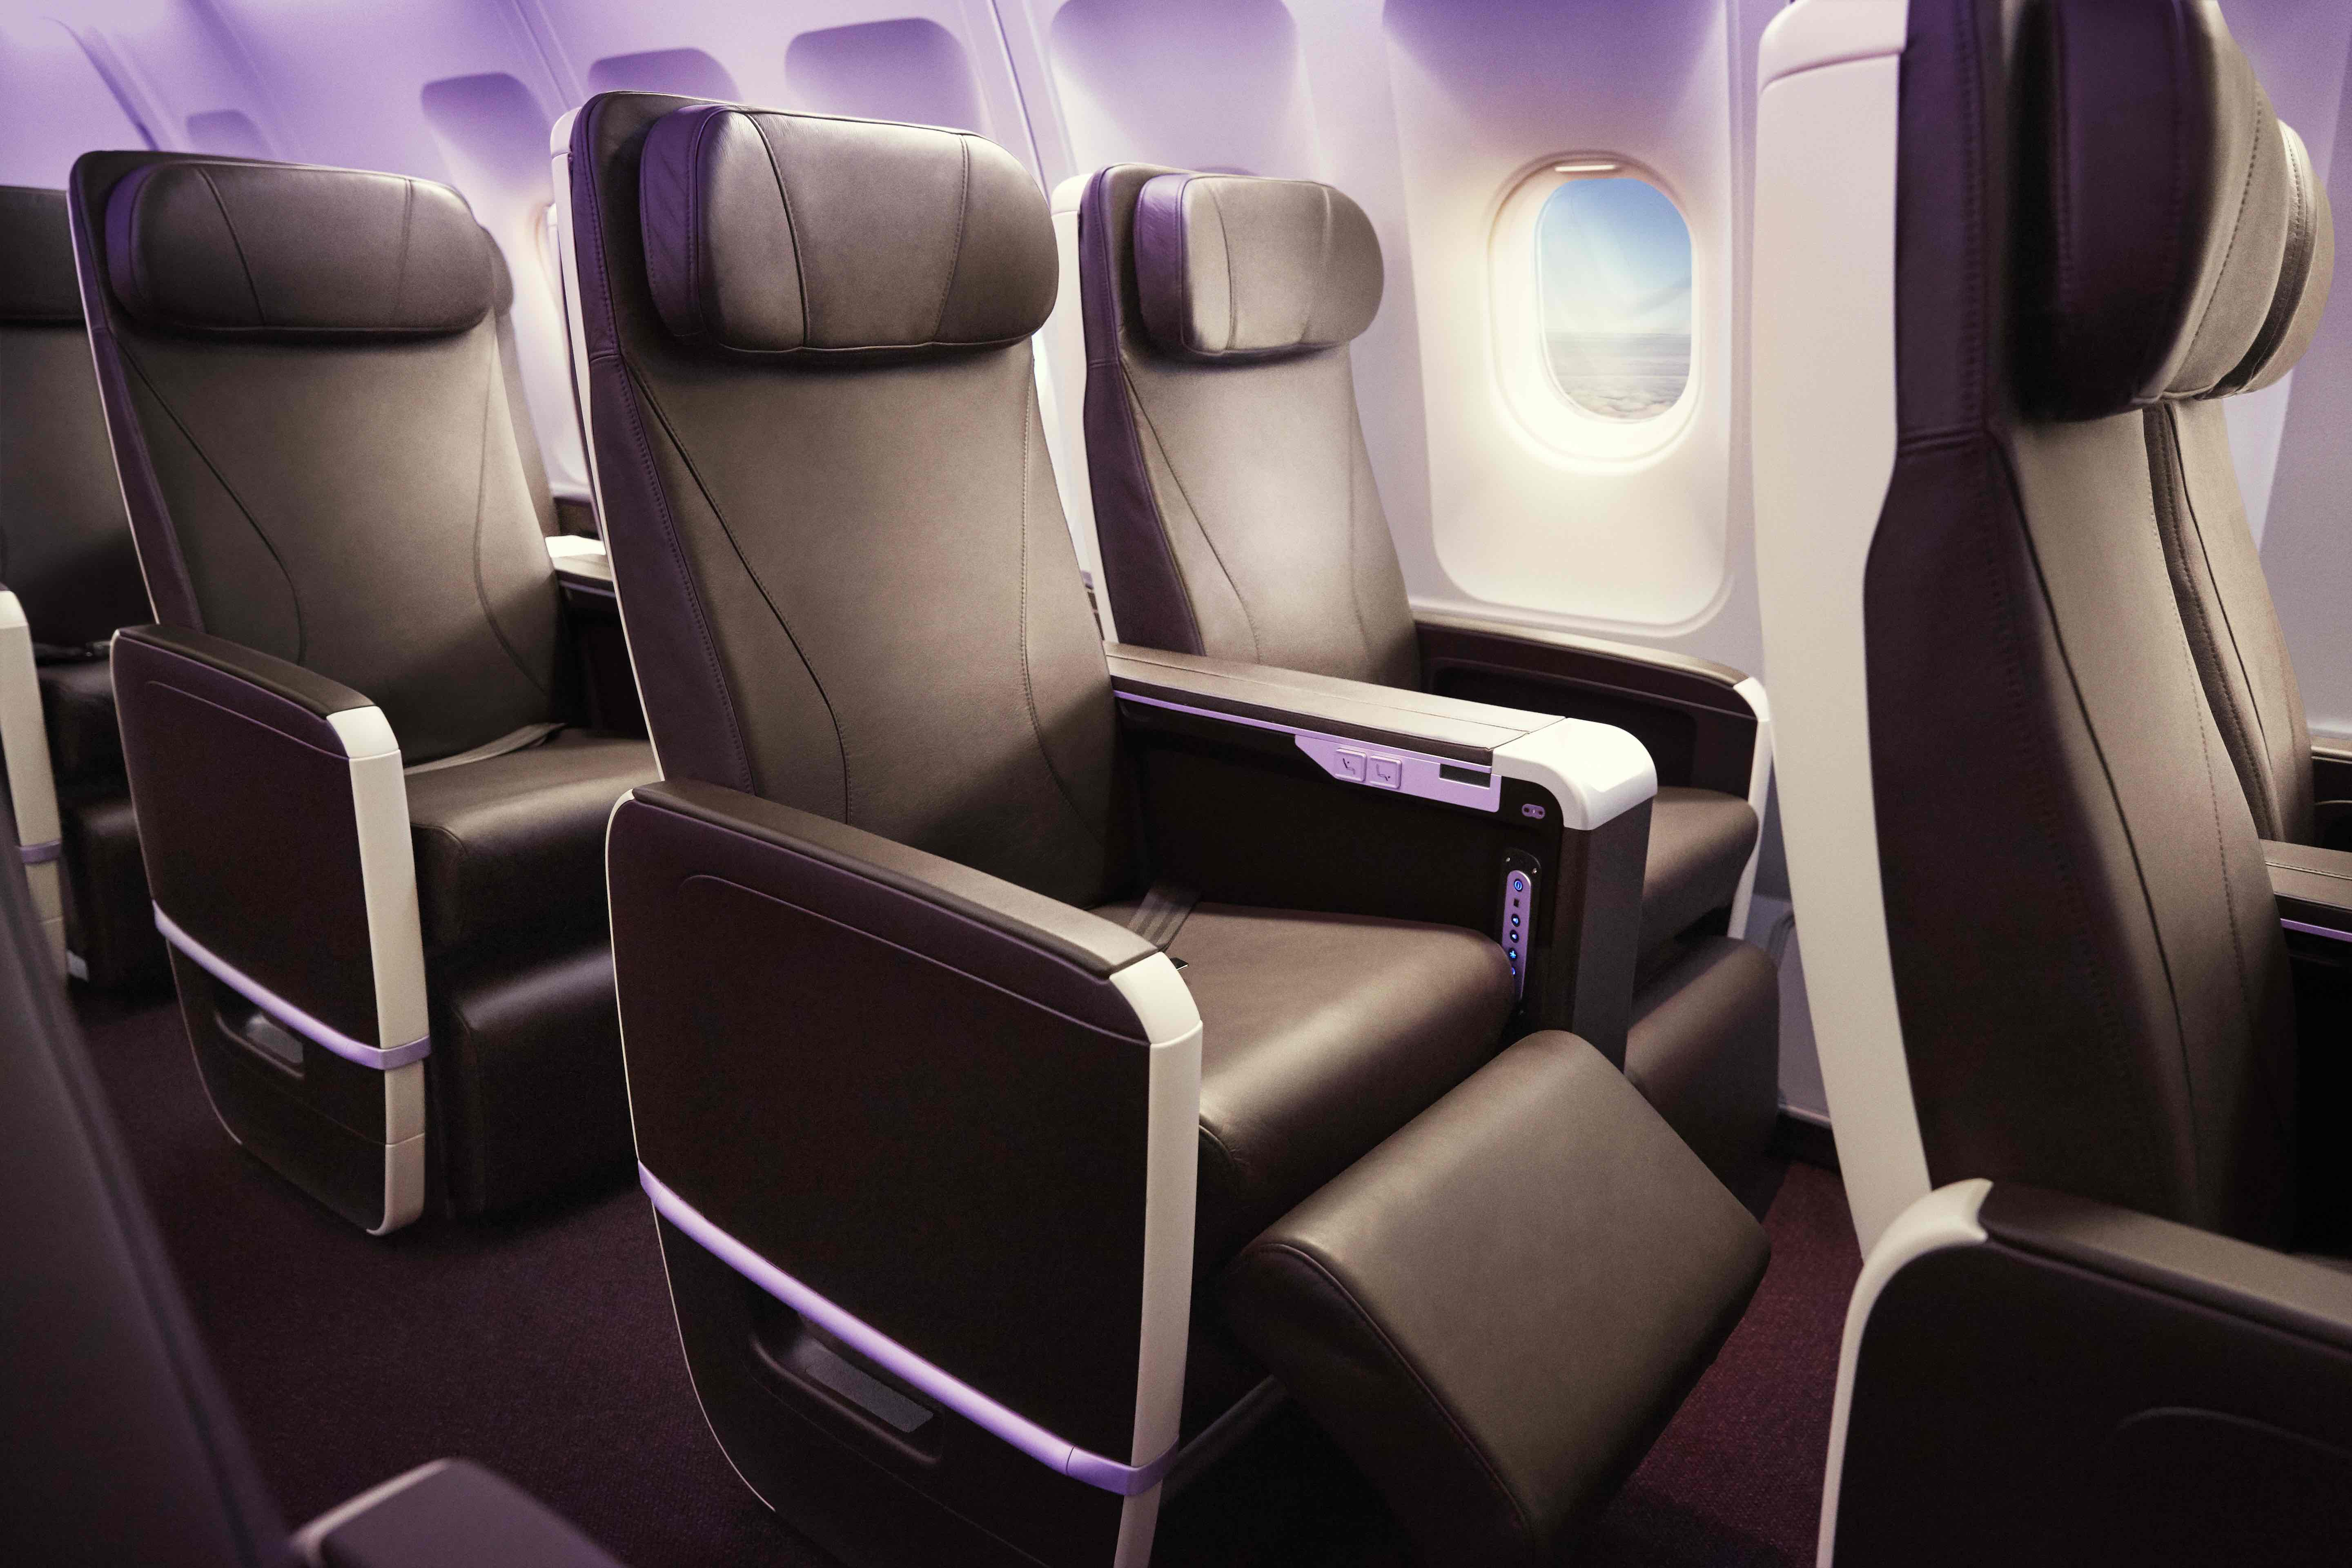 2019 Is The Year Of Premium Economy  Here's Why You Care